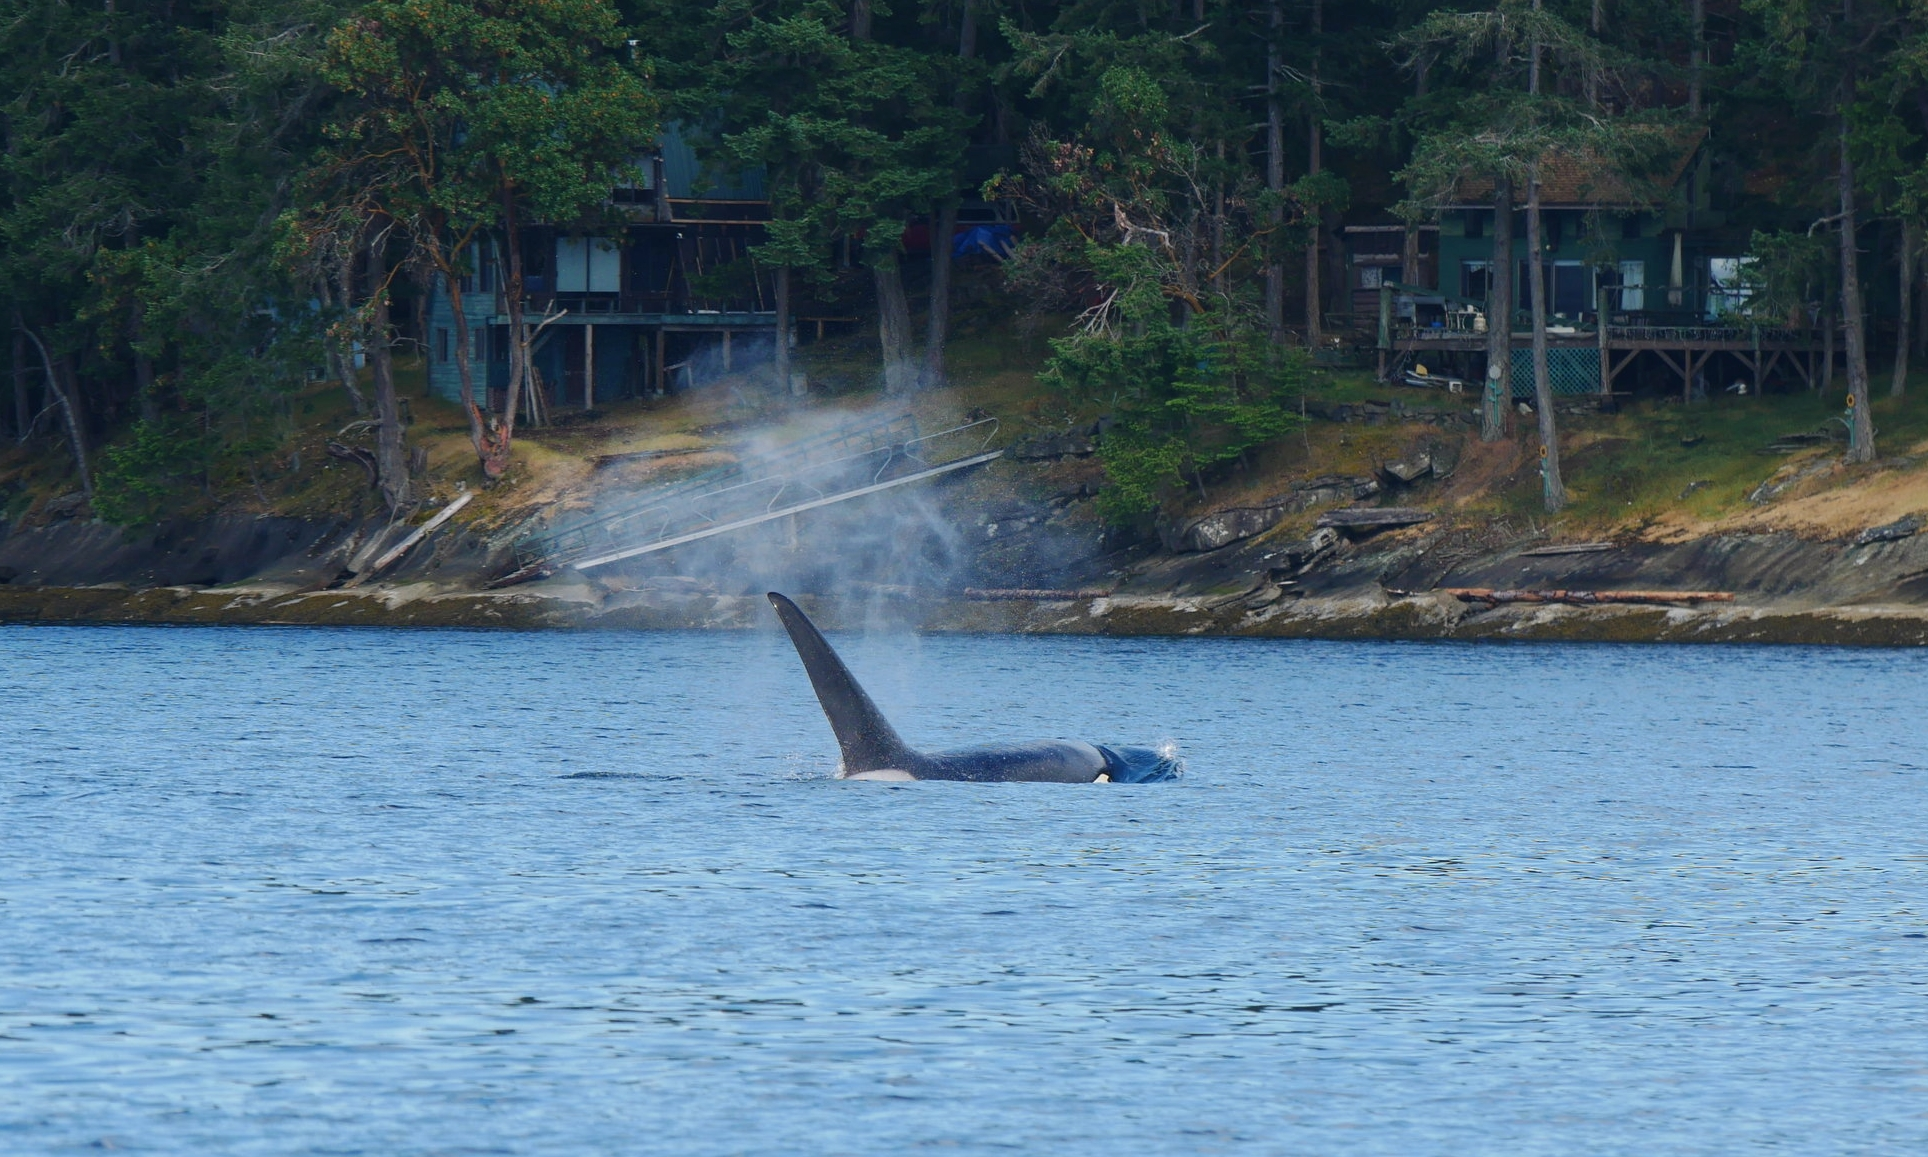 This whale's fin is still growing! Photo by Alanna Vivani.